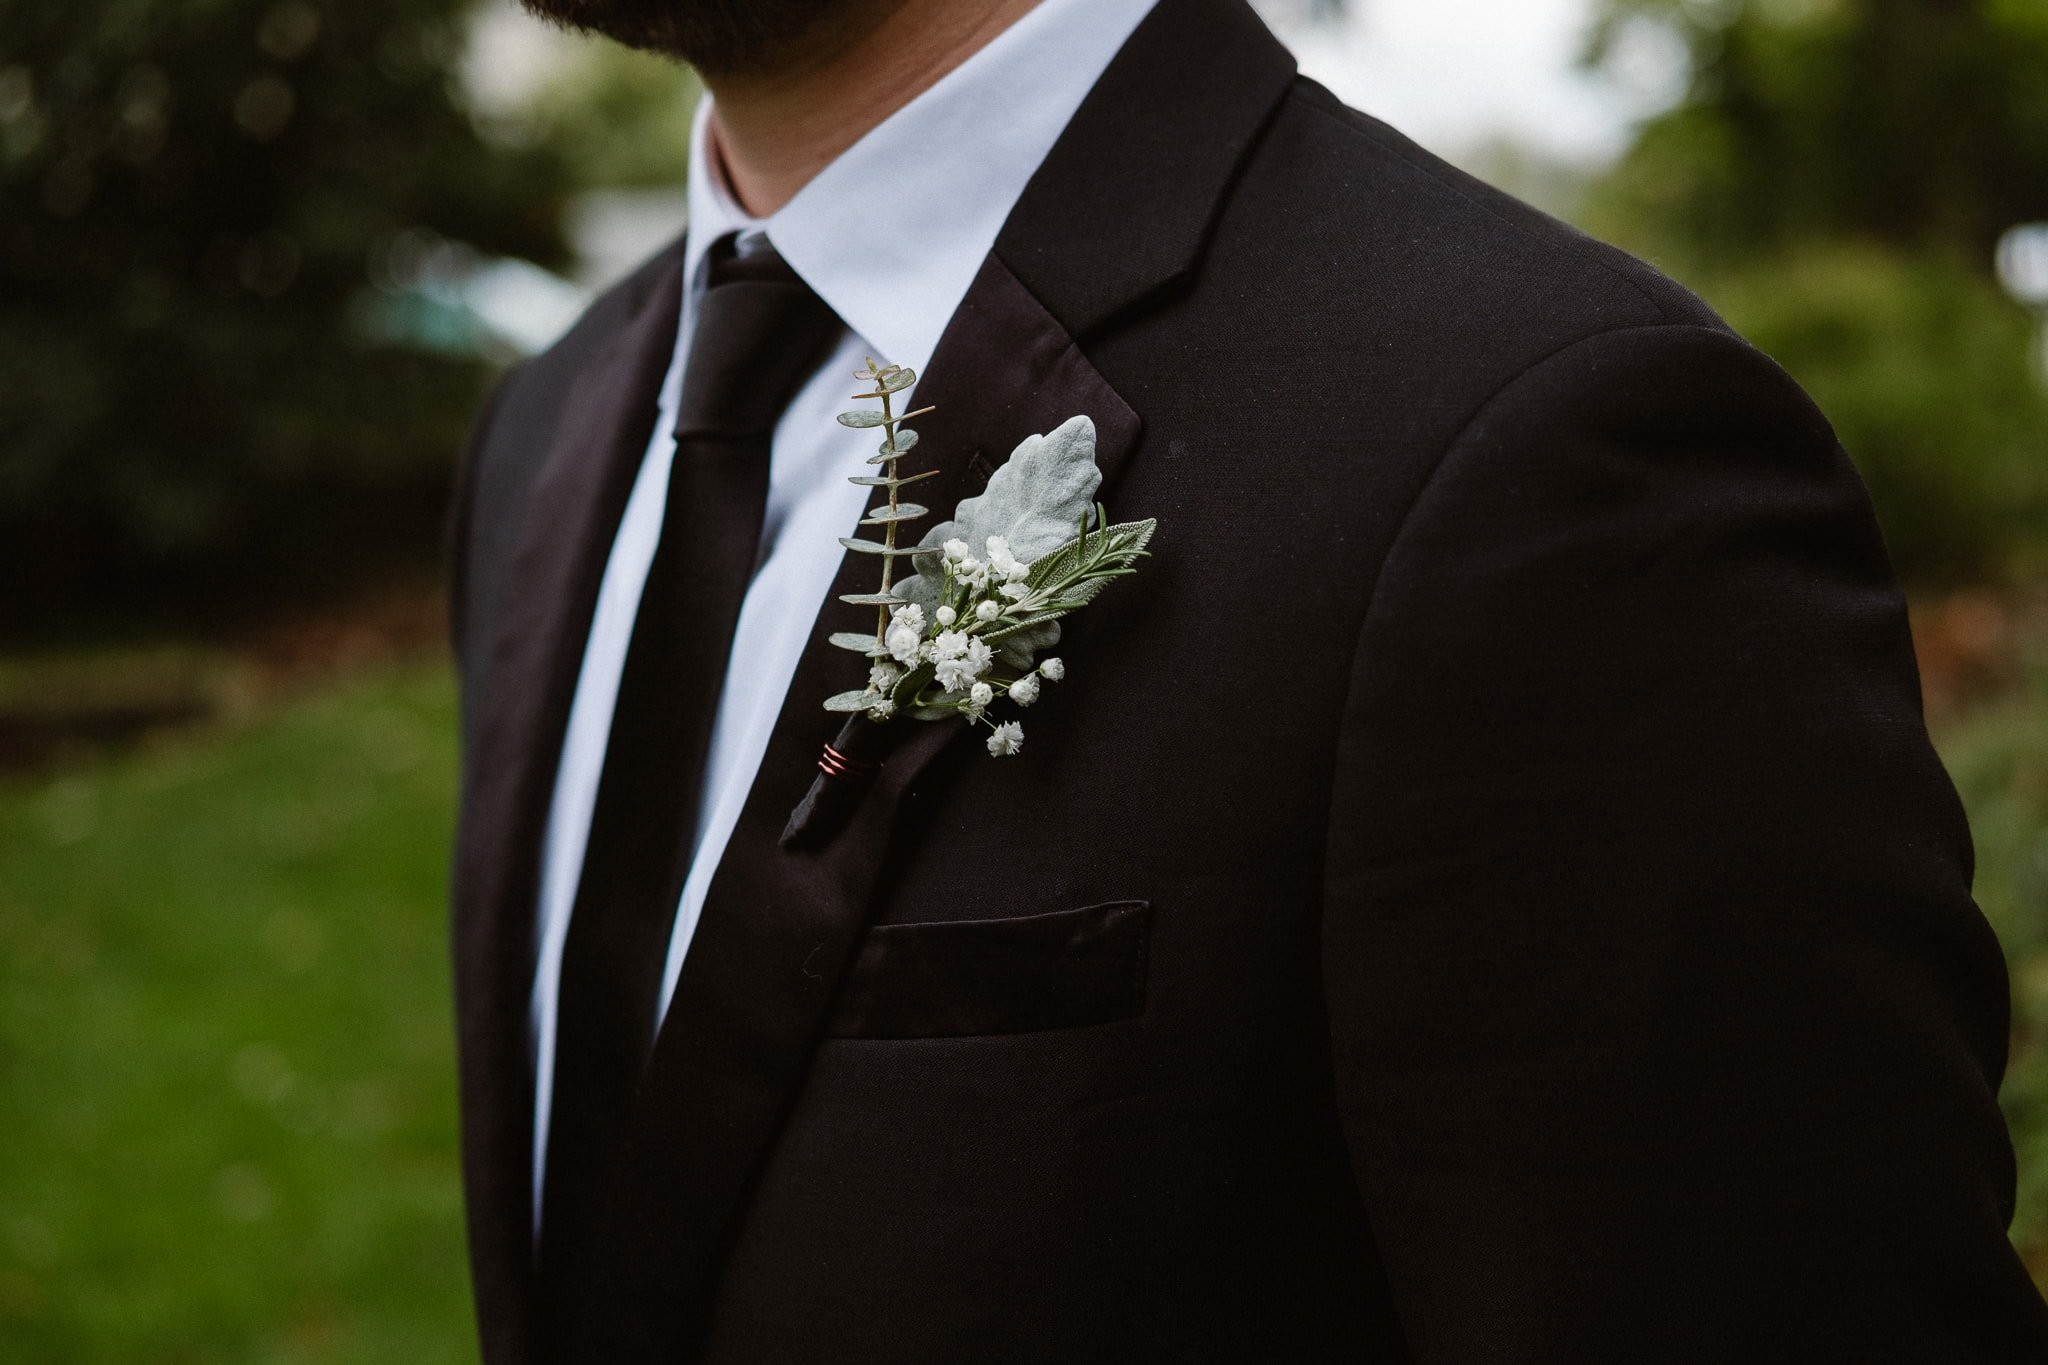 St Vrain Wedding Photographer | Longmont Wedding Photographer | Colorado Winter Wedding Photographer, Colorado industrial chic wedding, groom portrait, boutonniere